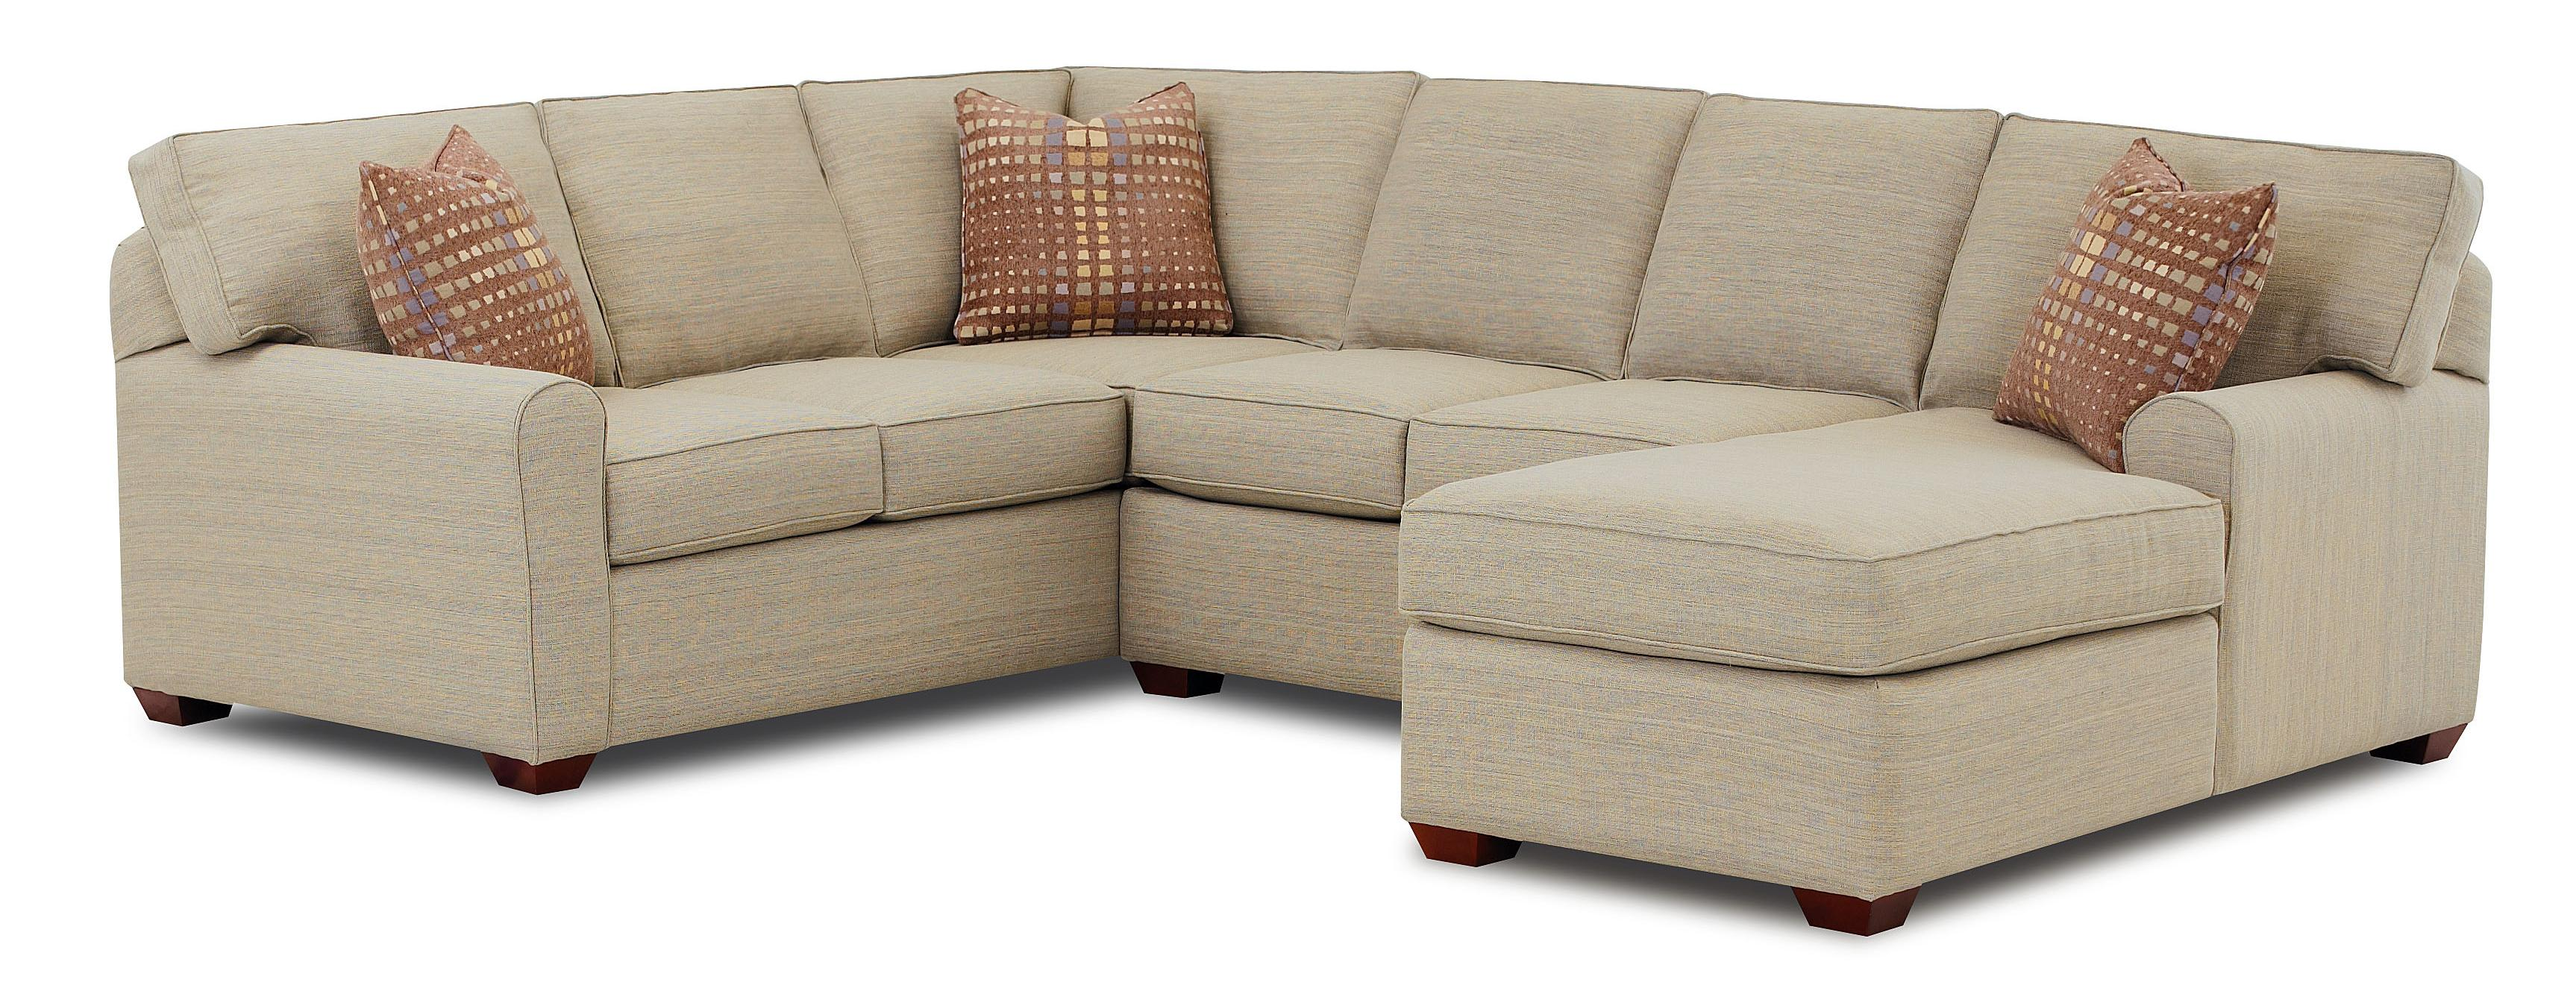 Lounge Sofa Depth Sectional Sofa With Right Facing Chaise Lounge By